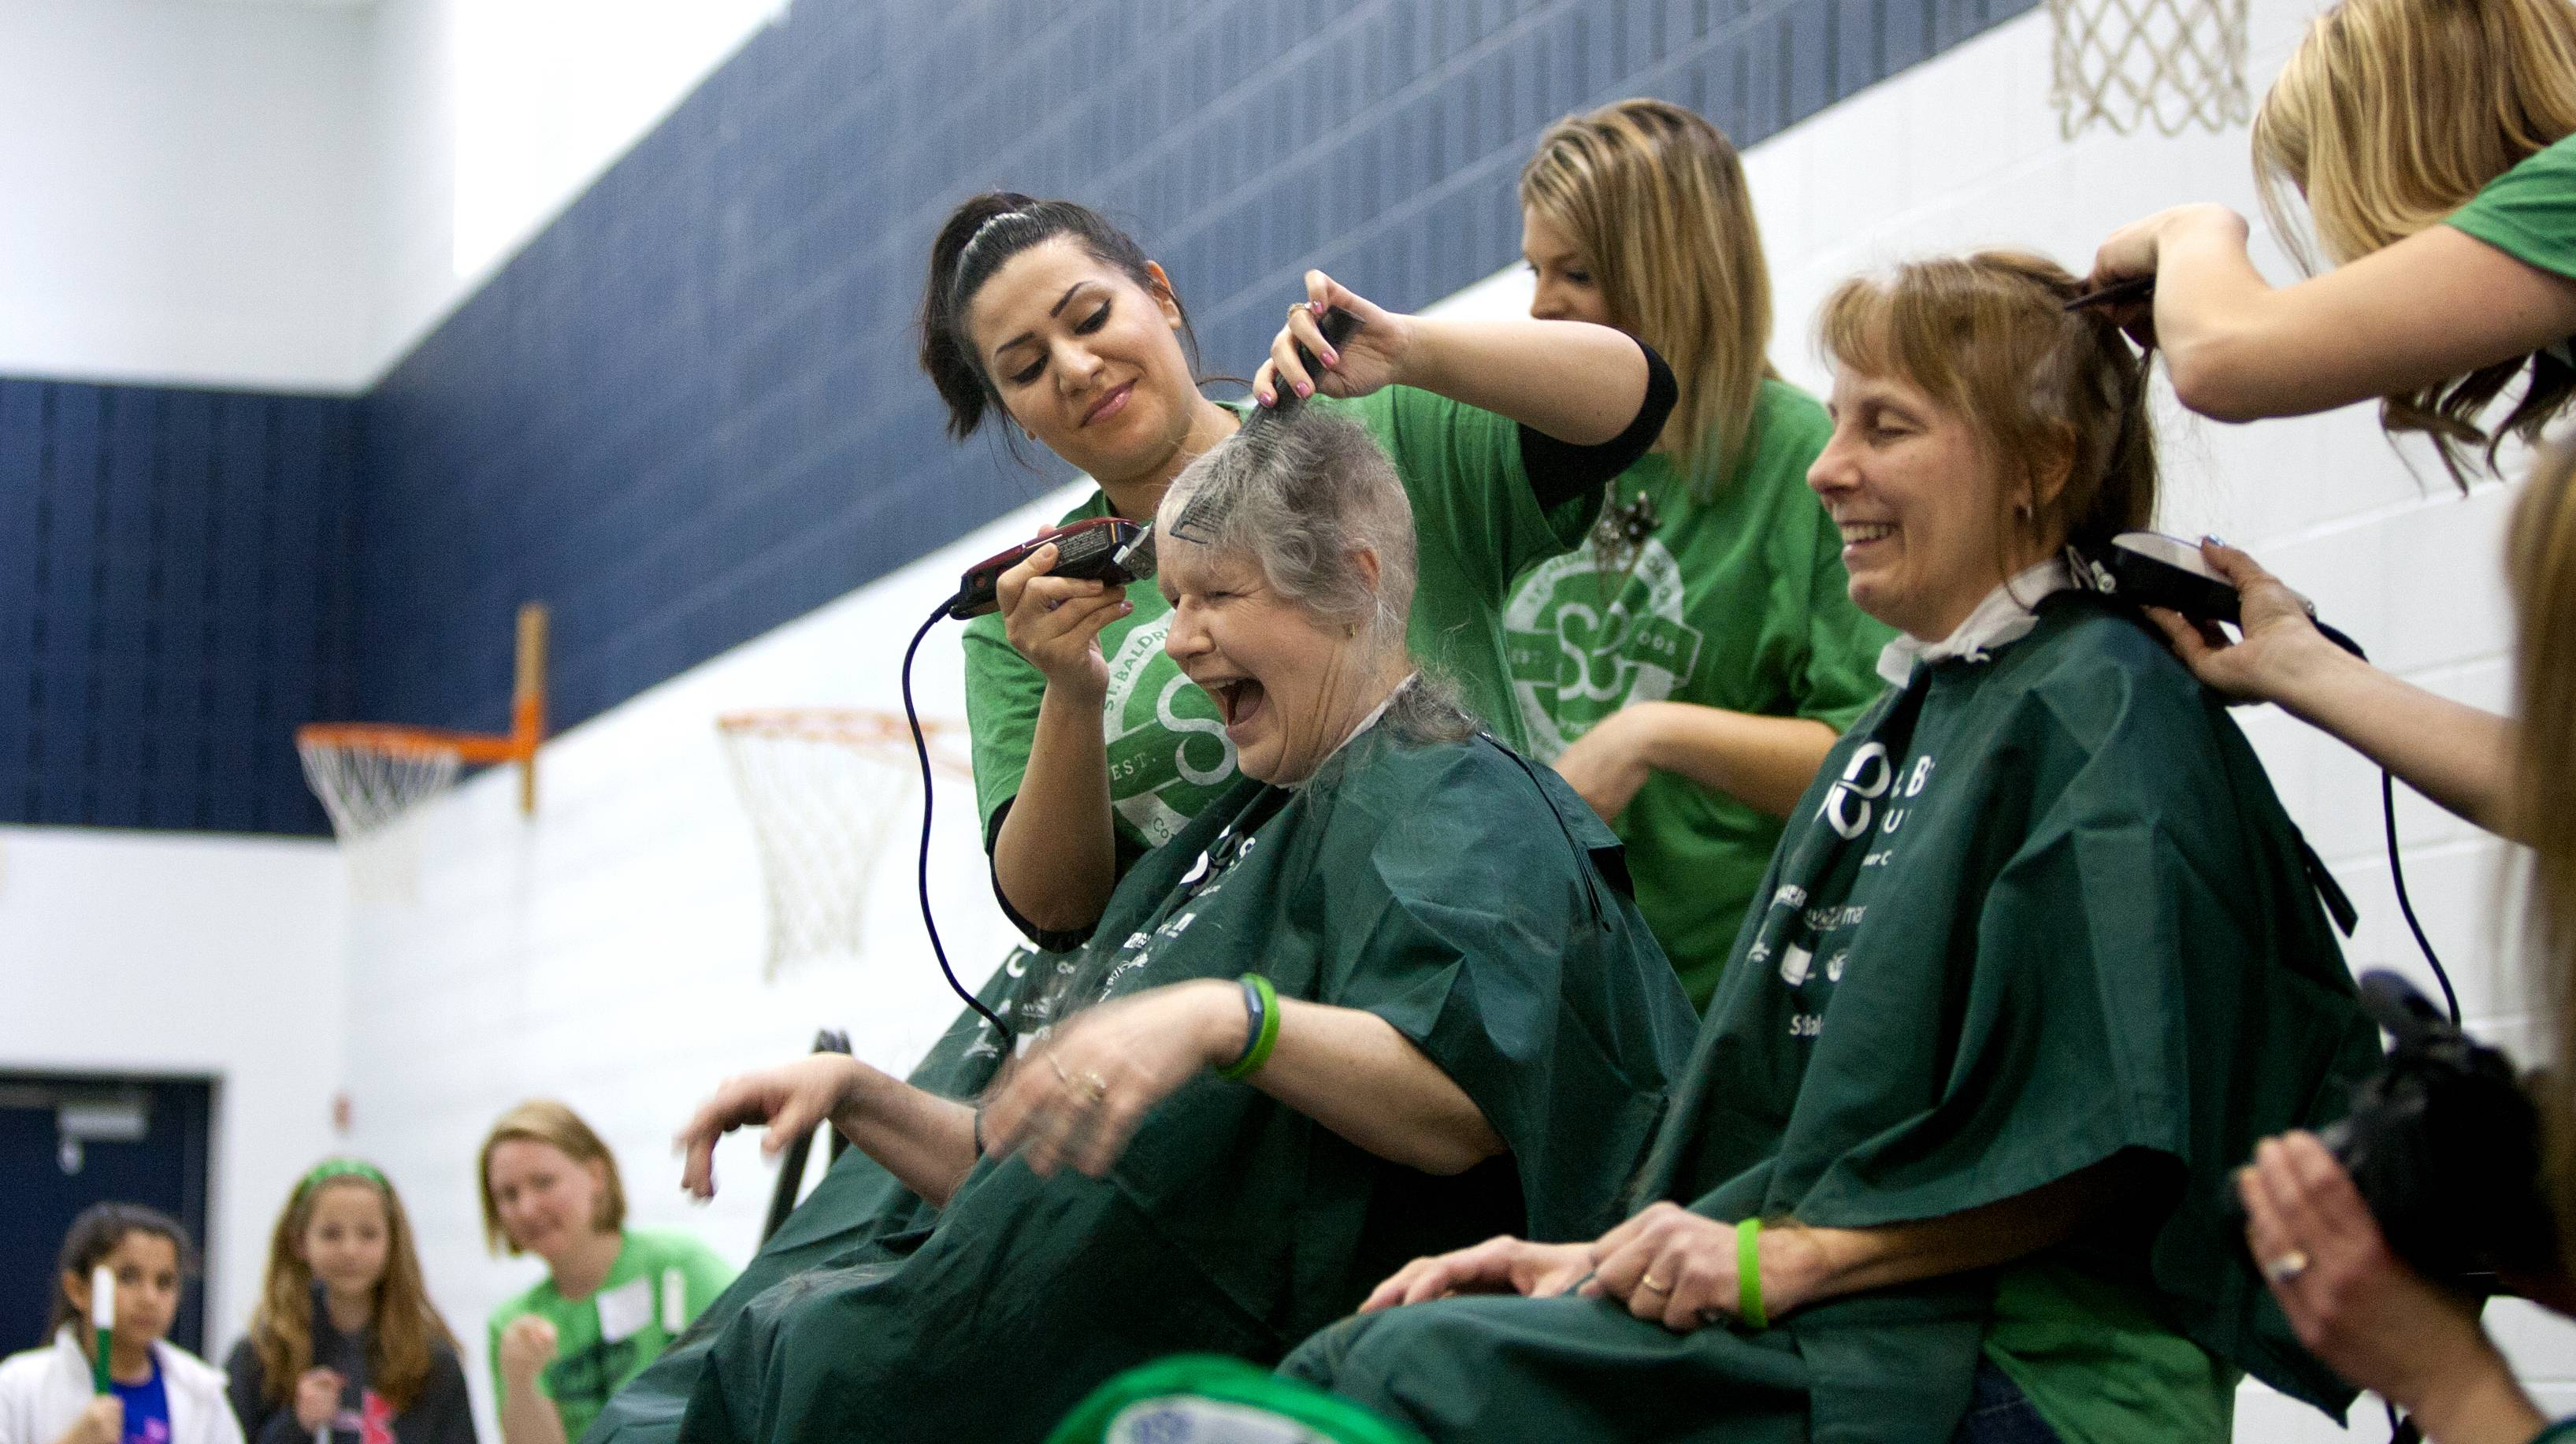 Educators Judy Bilitzki, left, and Pam Menzel, right, get their heads shaved during a St. Baldrick's fundraiser Friday at Madison Elementary School in Wheaton.